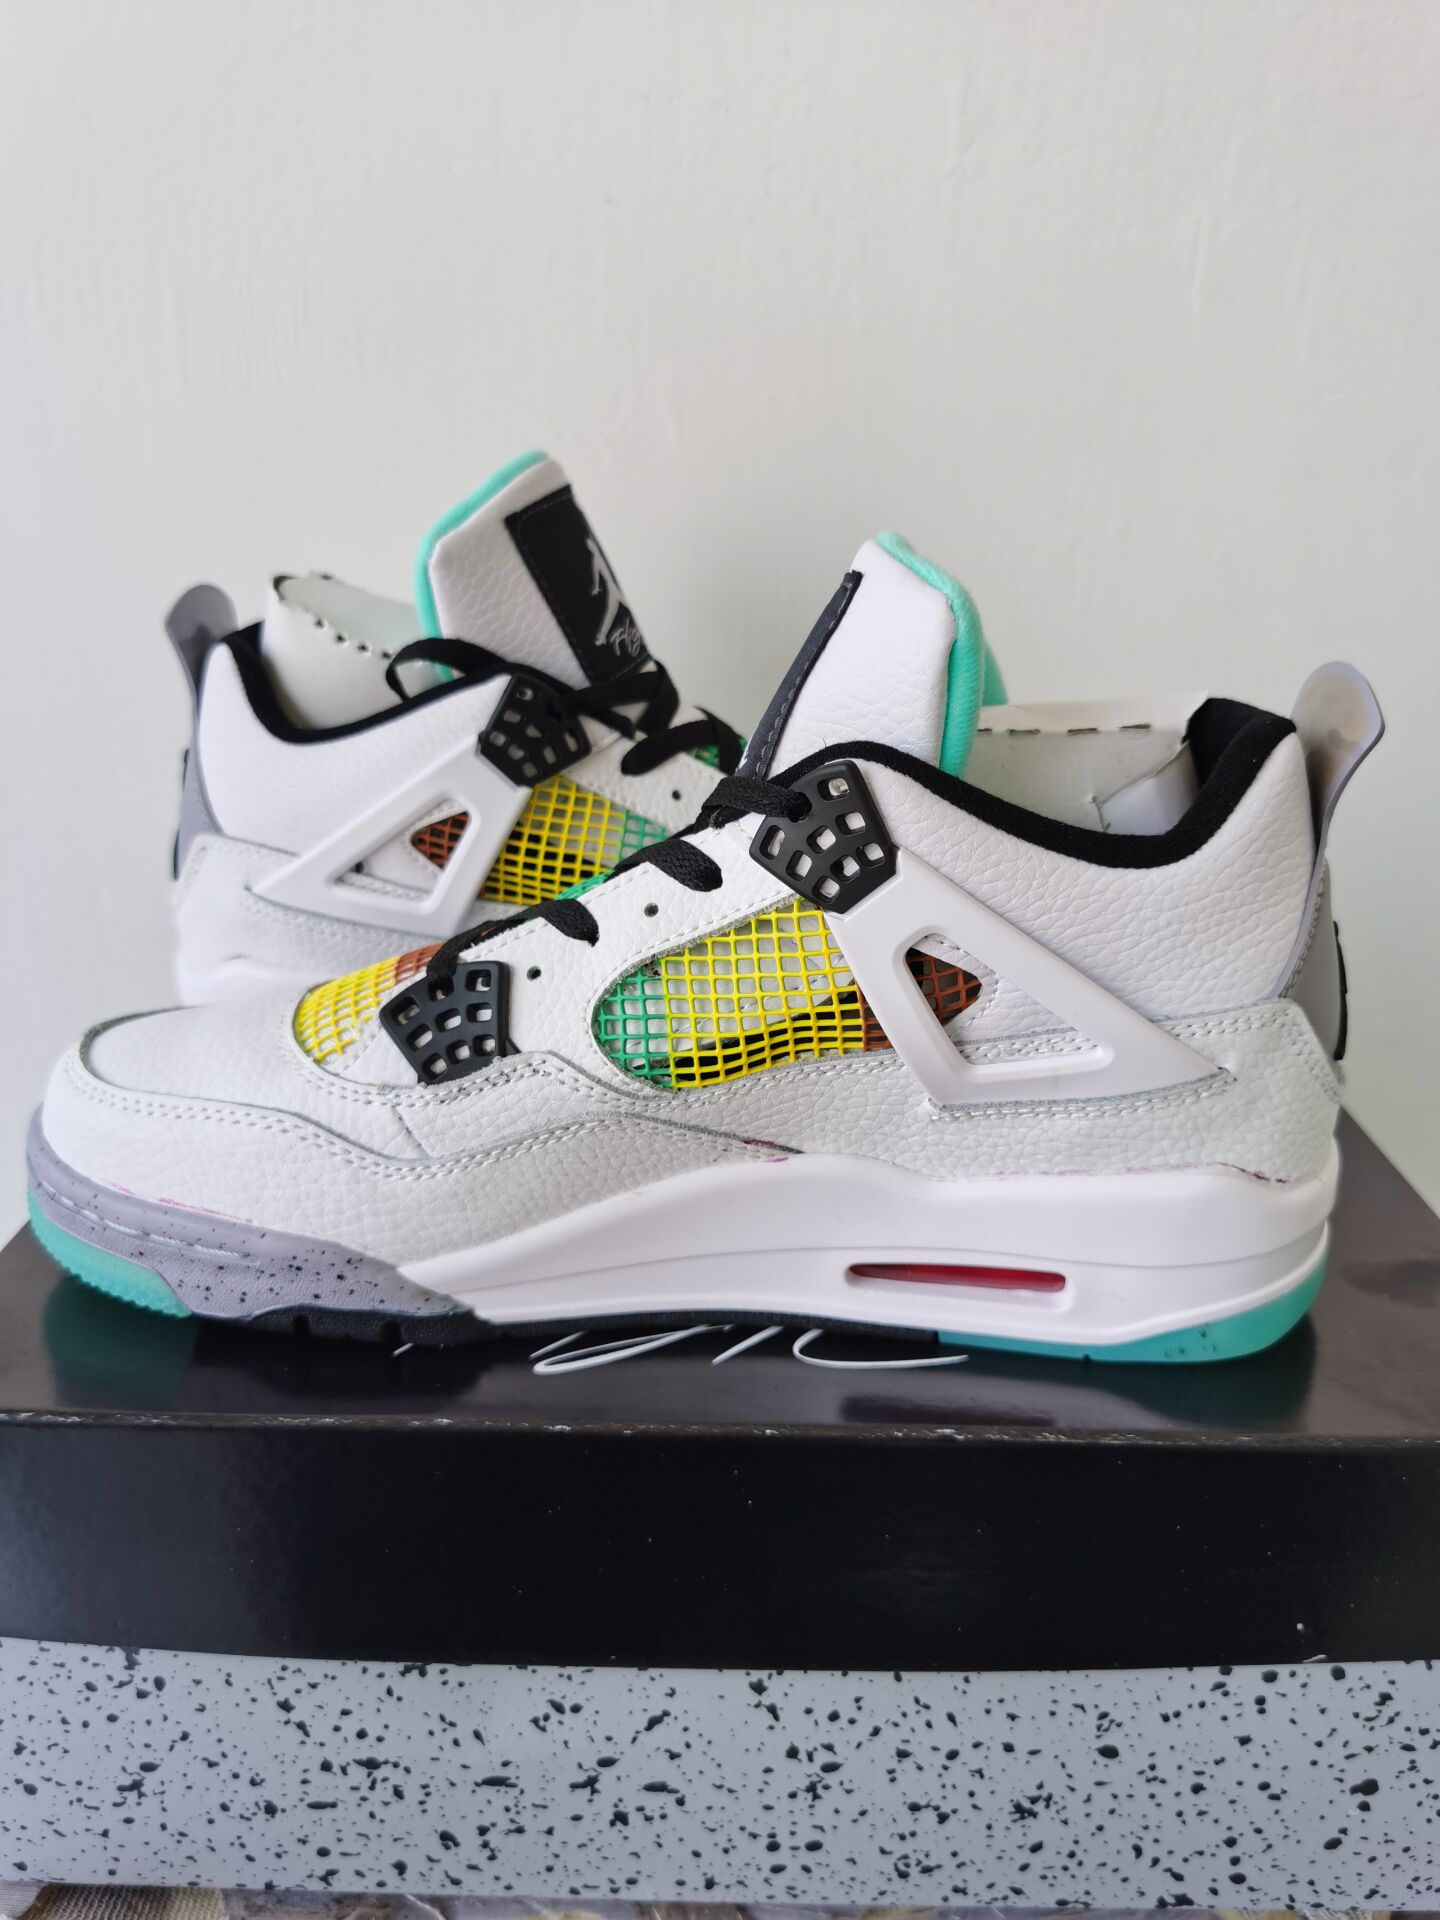 2020 Air Jordan 4 Carnival White Black Colorful Shoes For Women